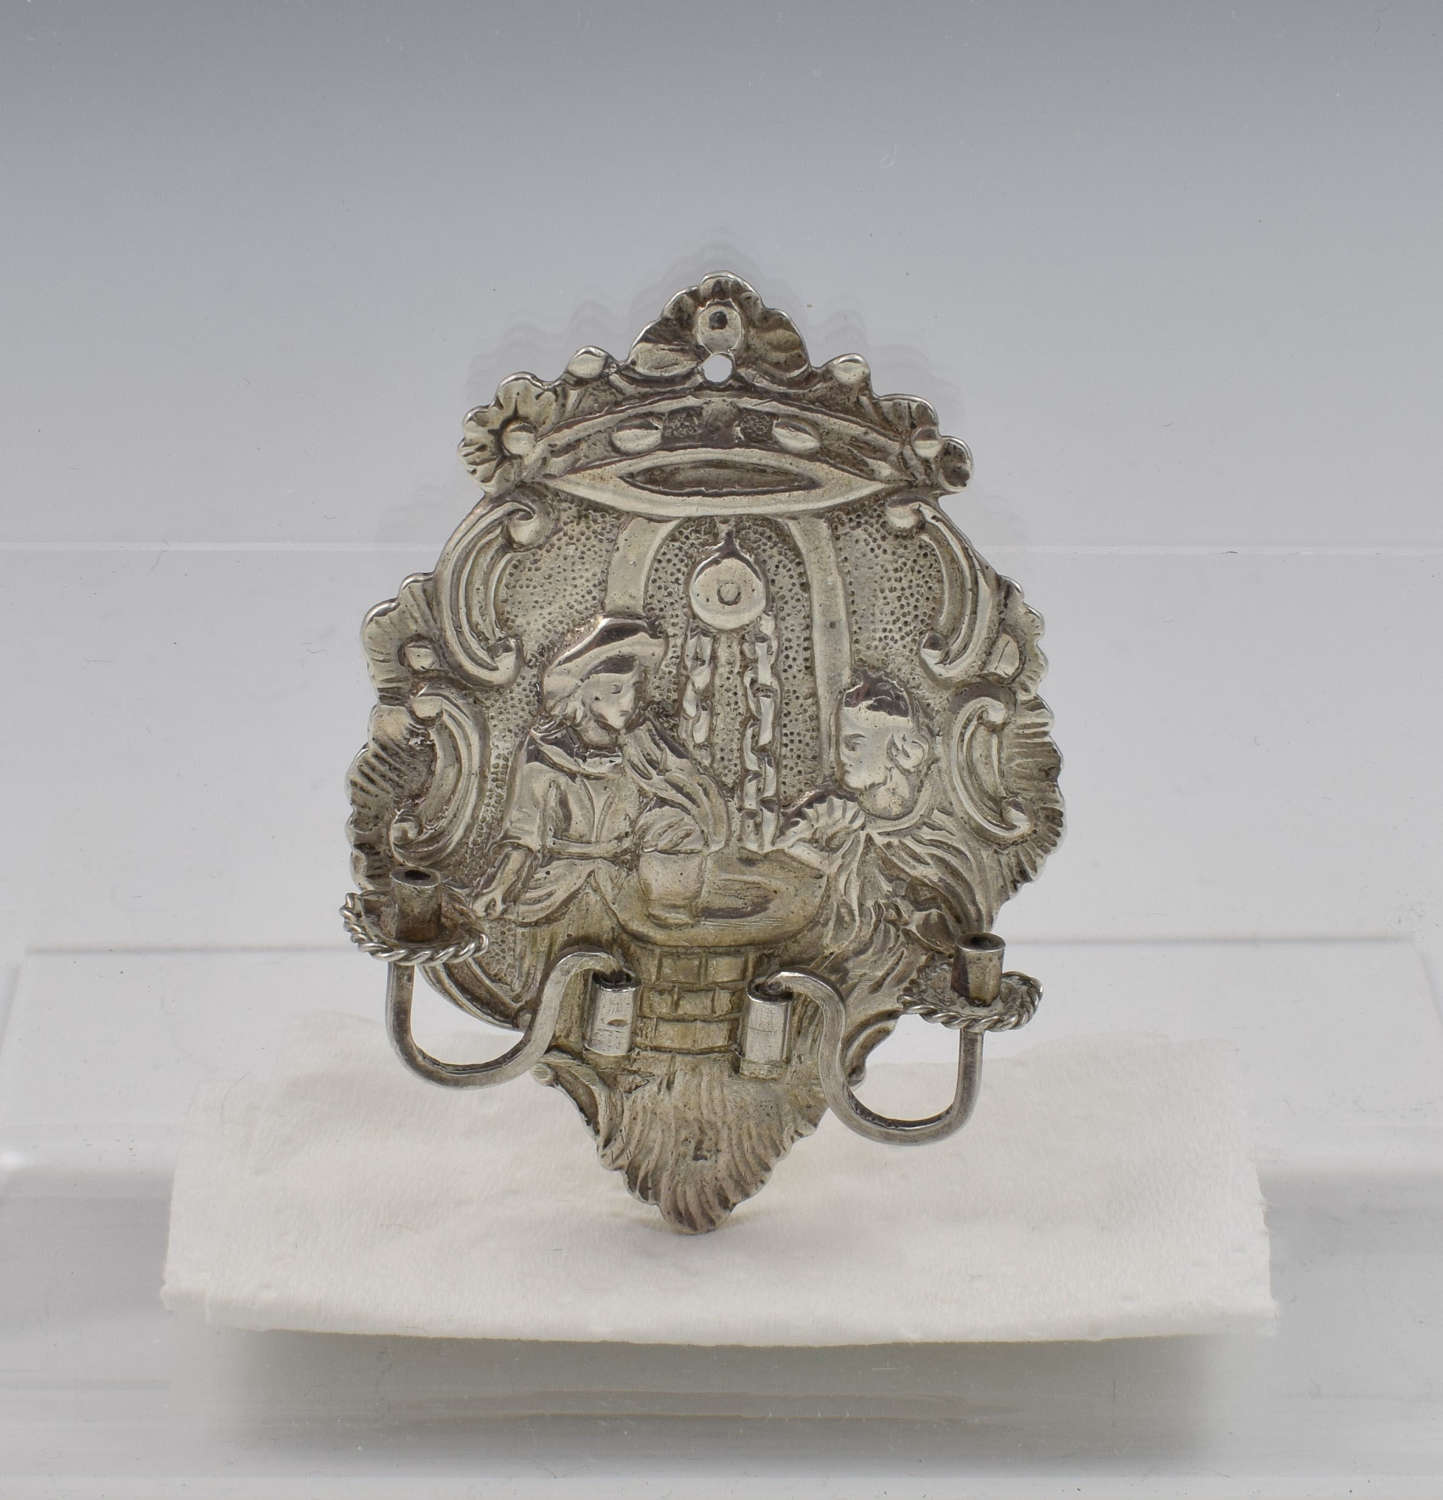 Unusual Dutch Silver Novelty Miniature Wall Sconce